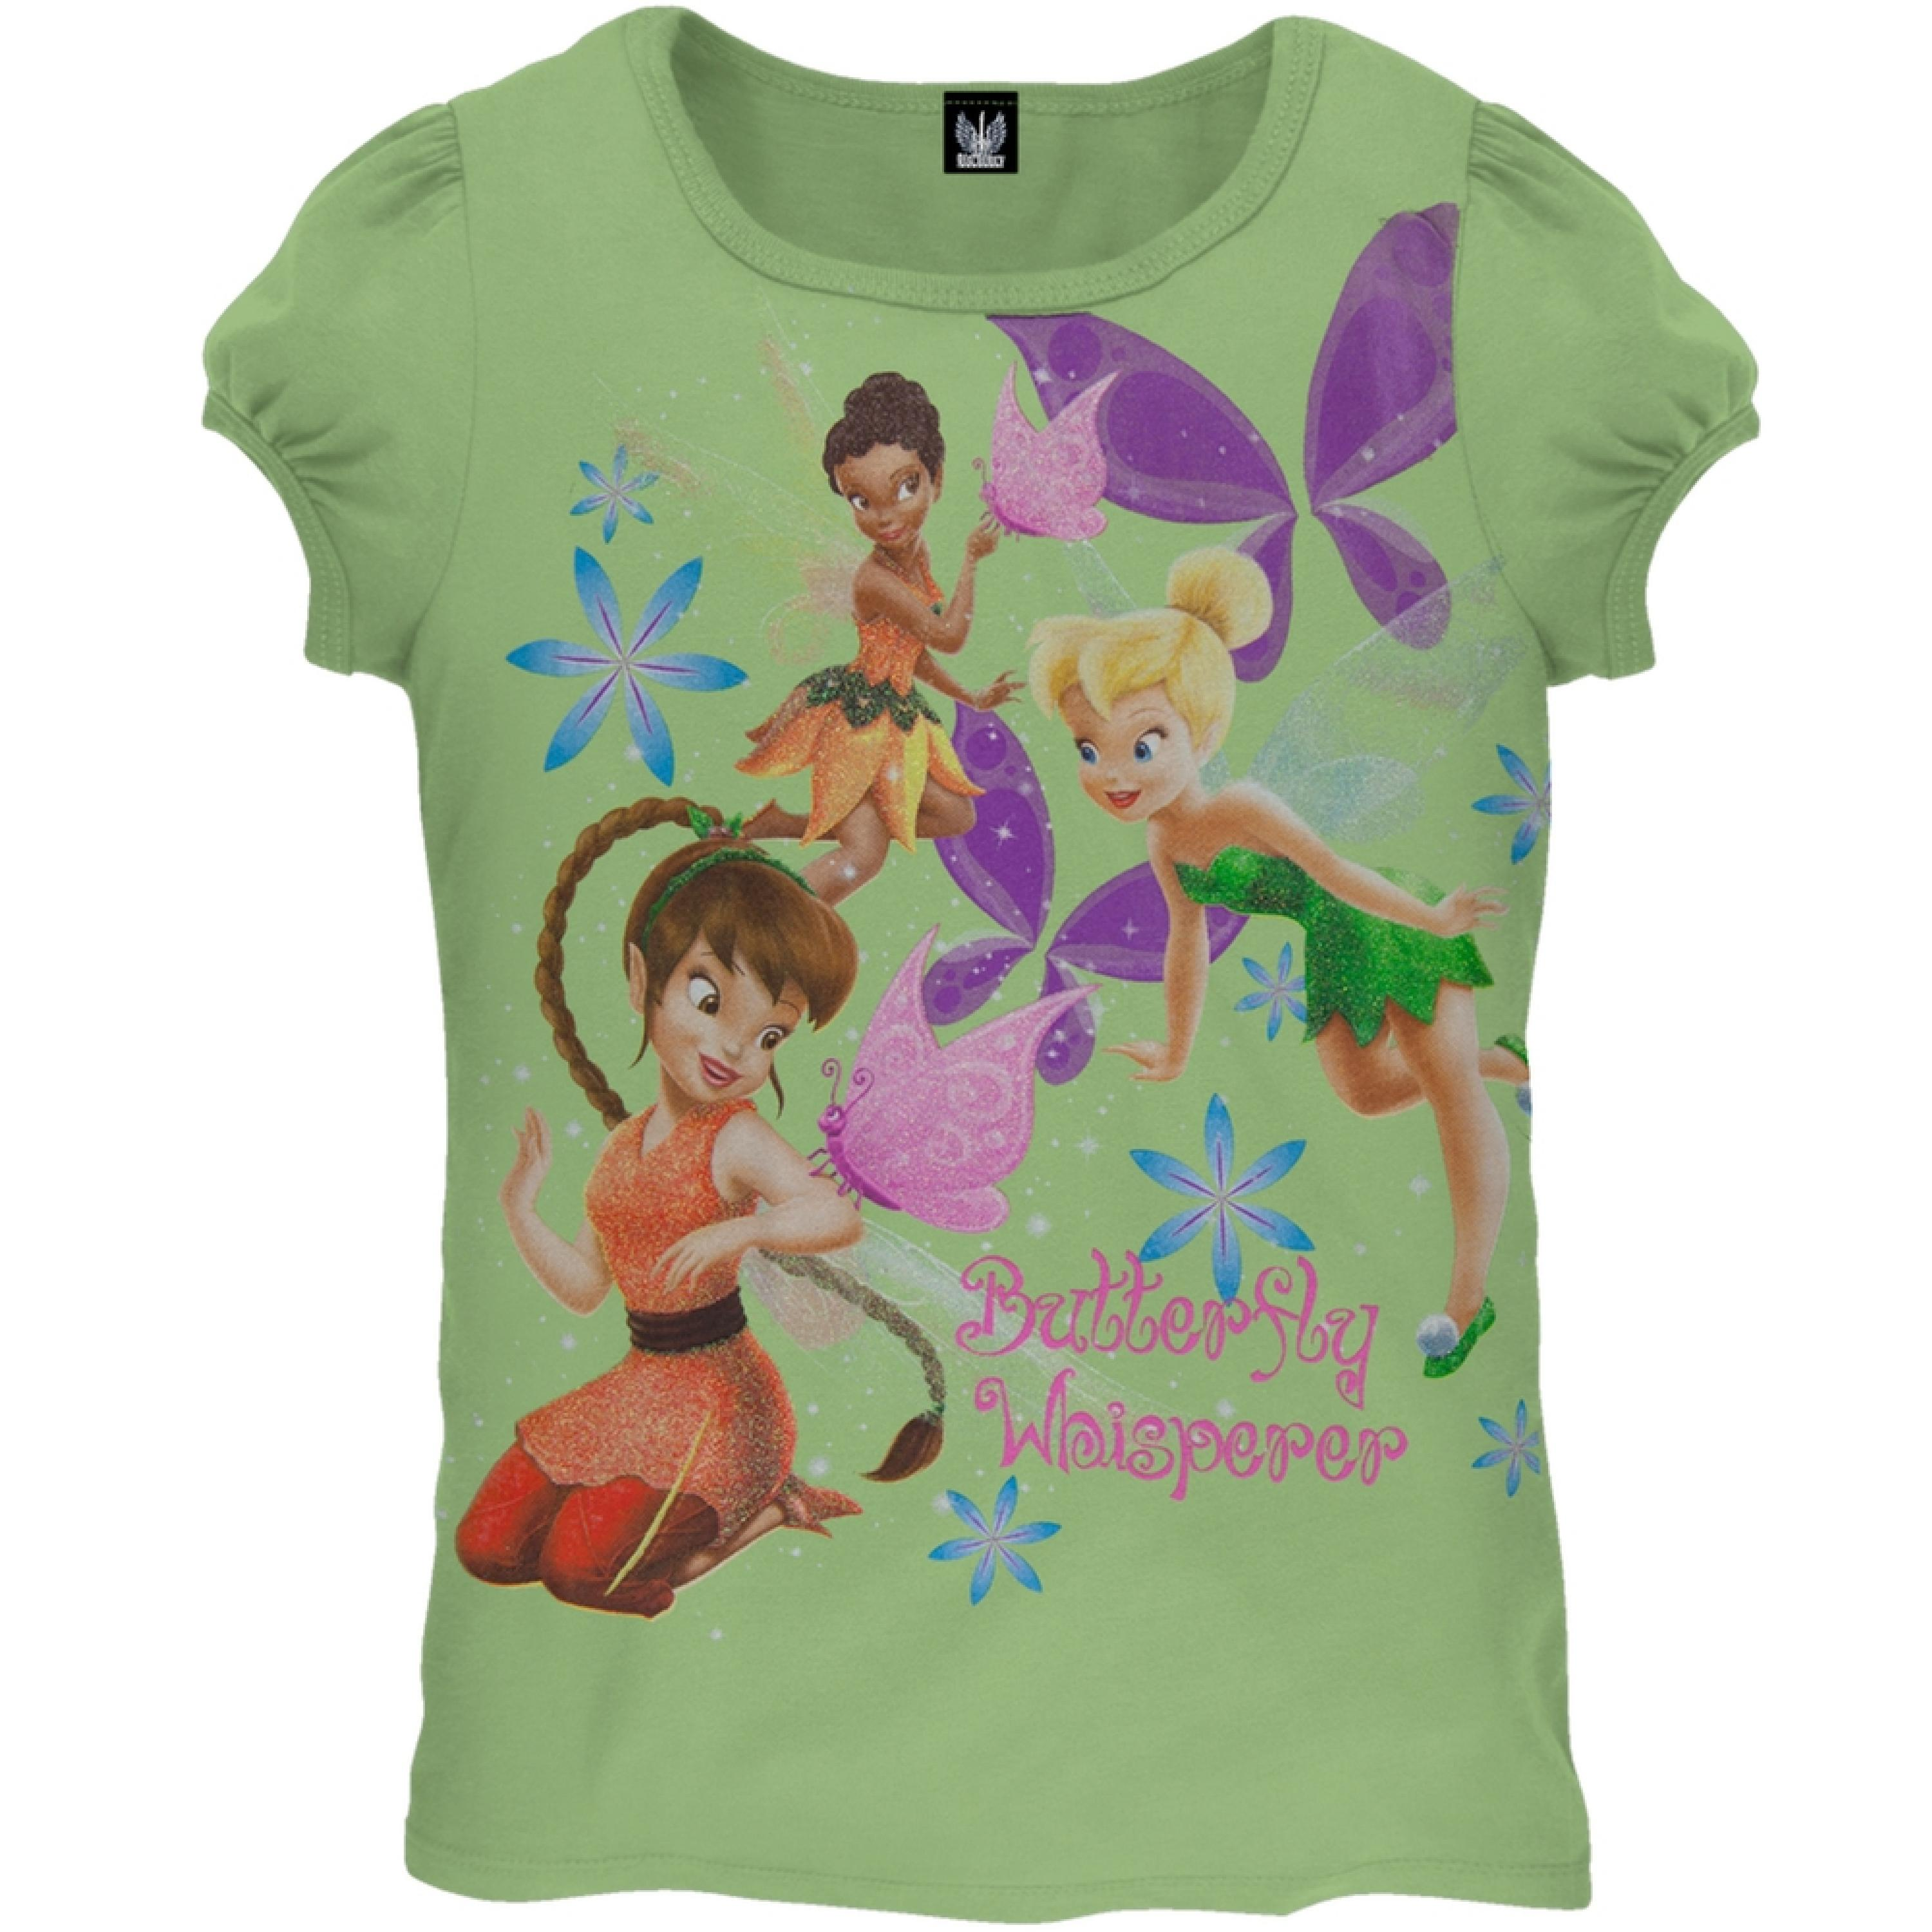 Disney Fairies - Butterfly Whisperer Girls Juvy T-Shirt